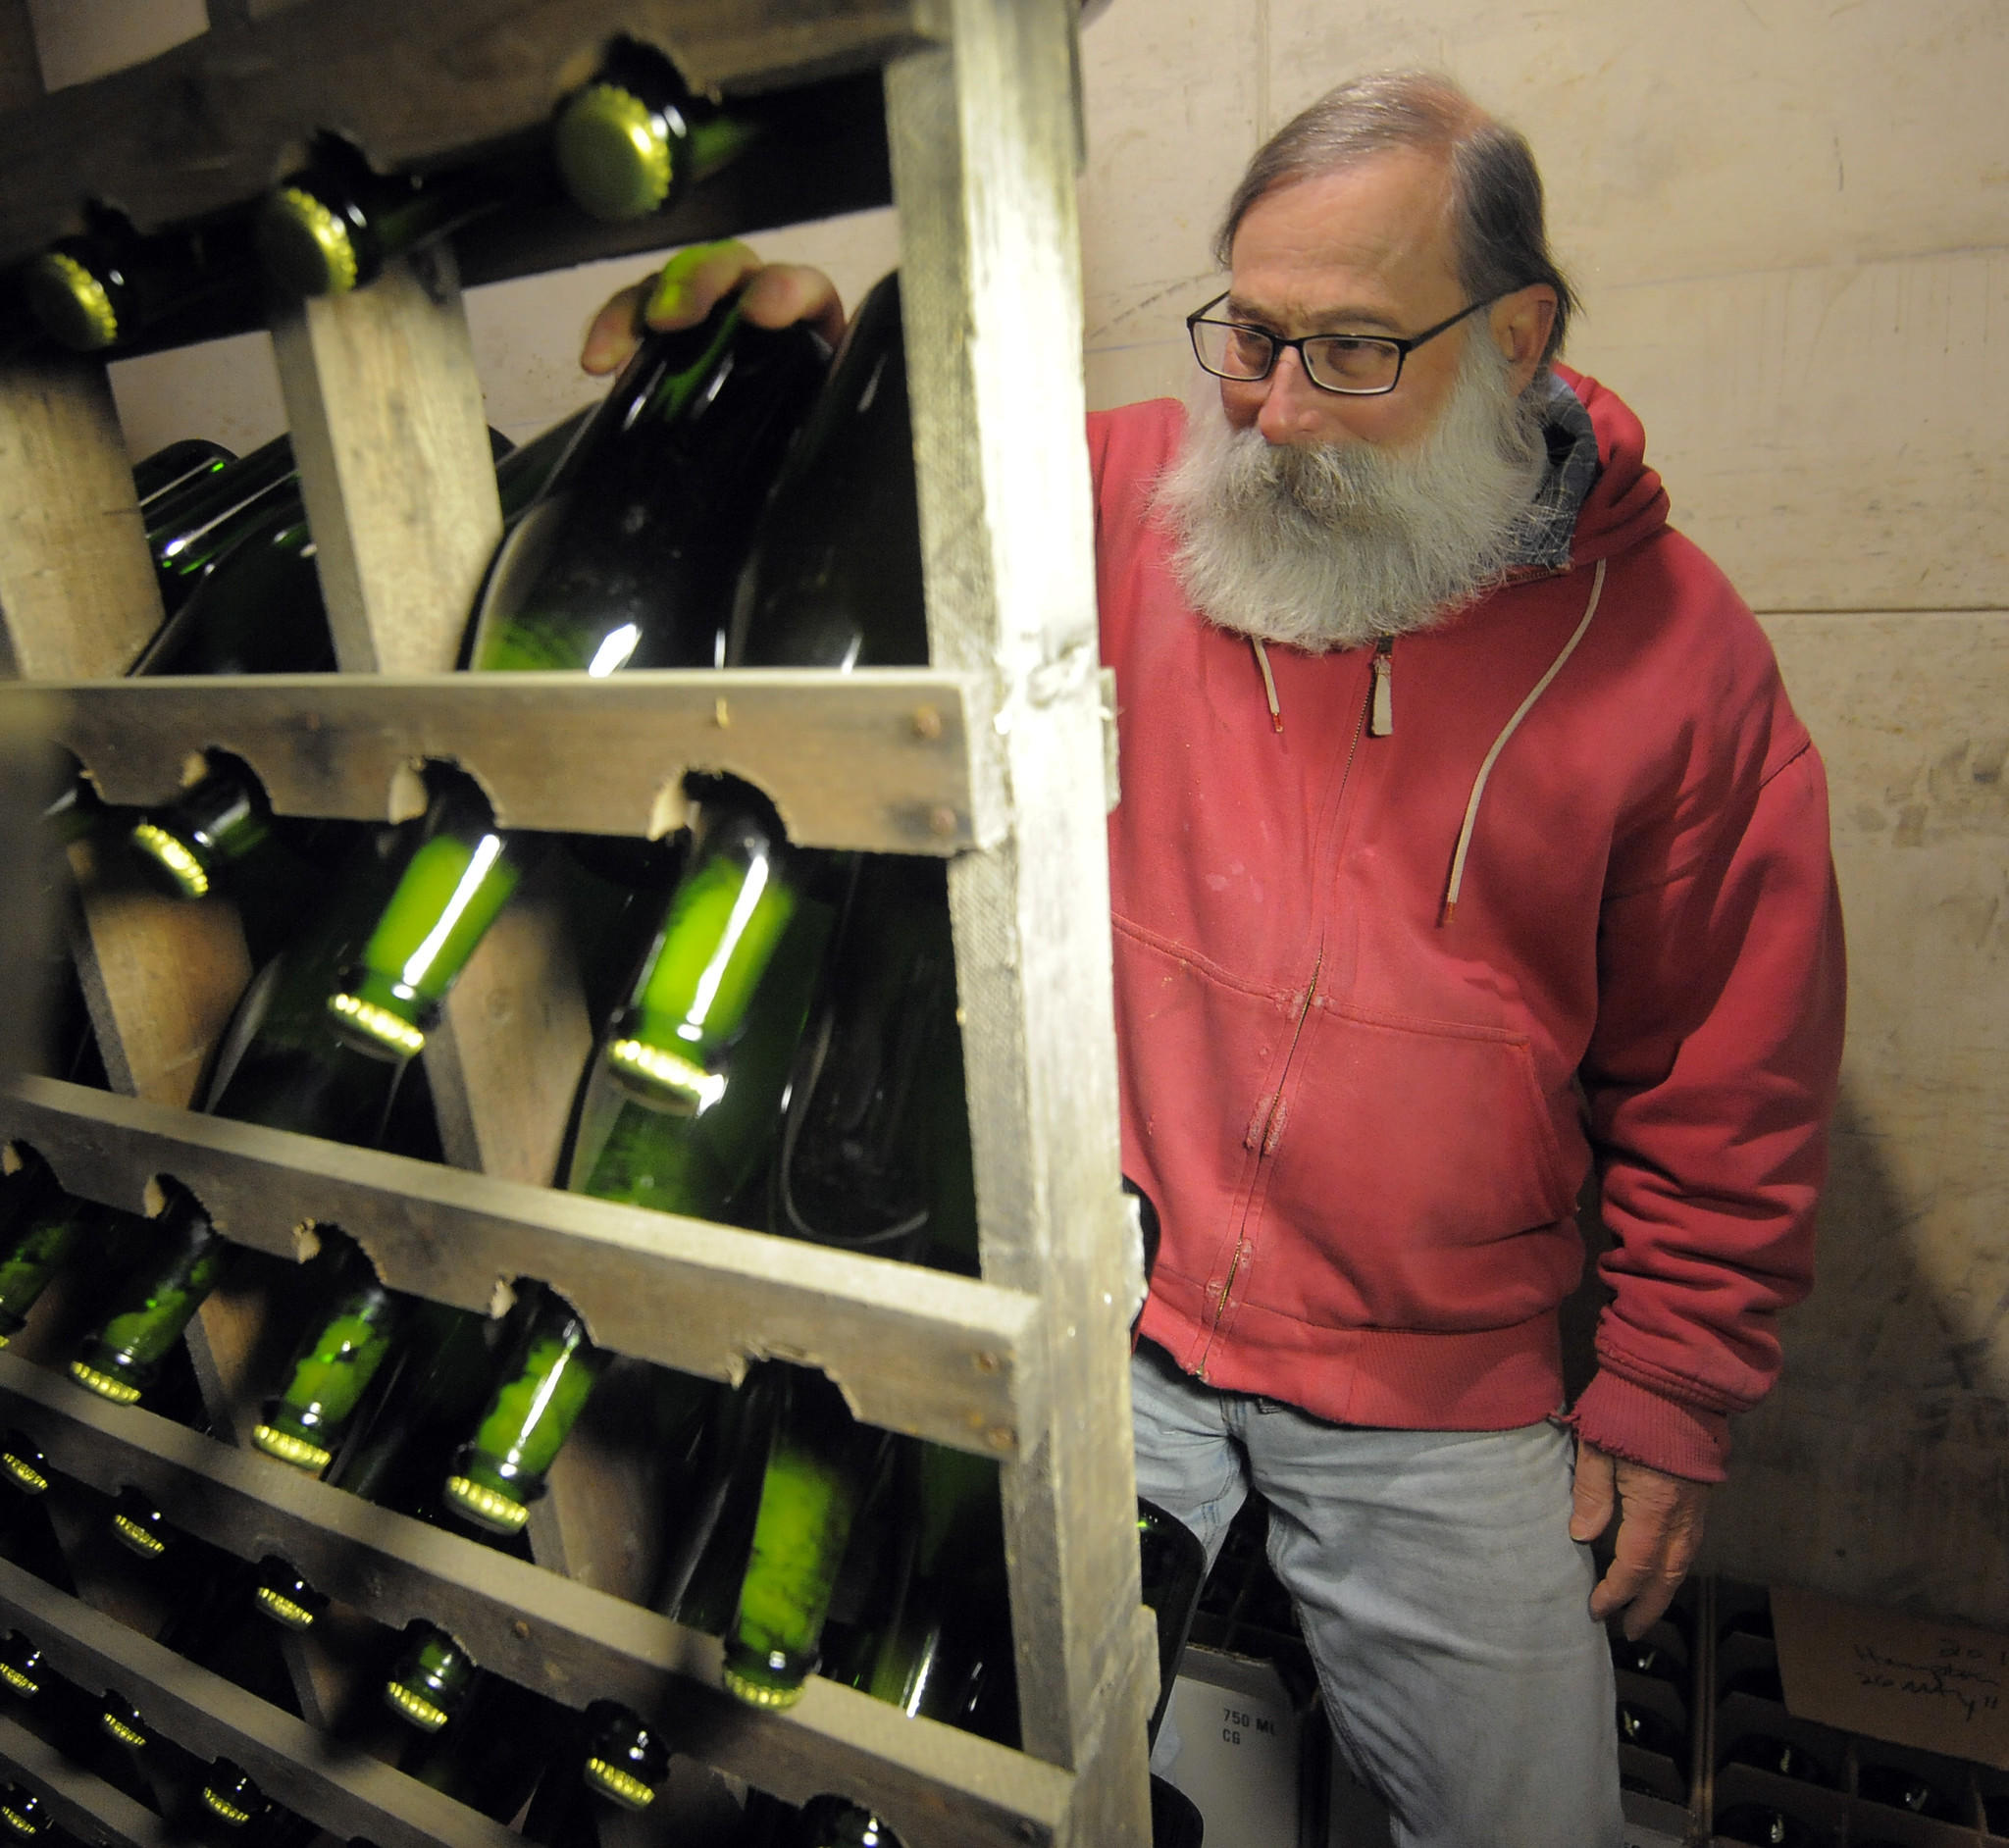 Ray Brasfield, owner and winemaker at Cygnus Wine Cellars, located in Carroll County, makes sparkling wine using the same process used for champagne.